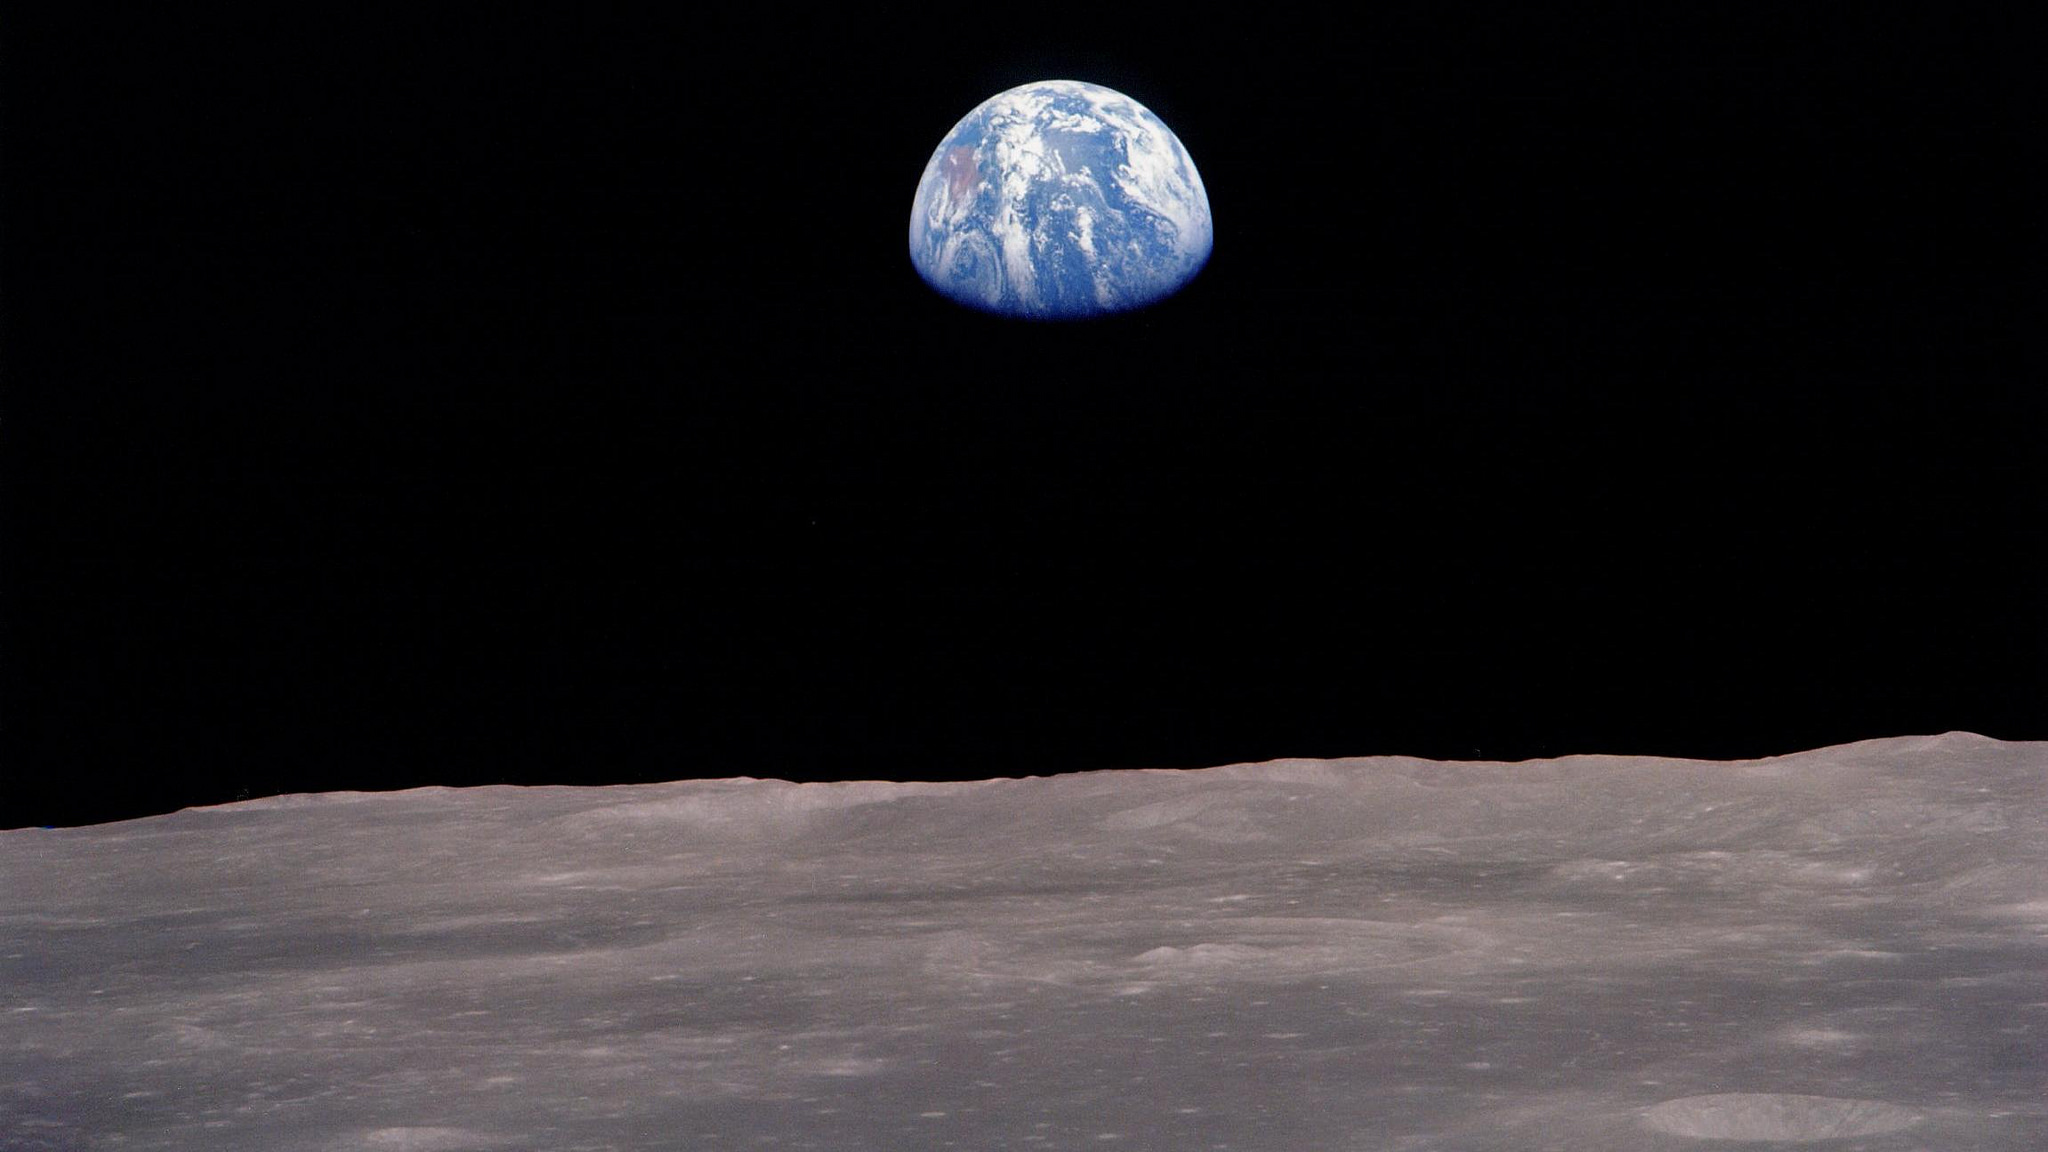 Earthrise, as seen from the Moon. Credit: mvannorden/Flickr, CC BY 2.0